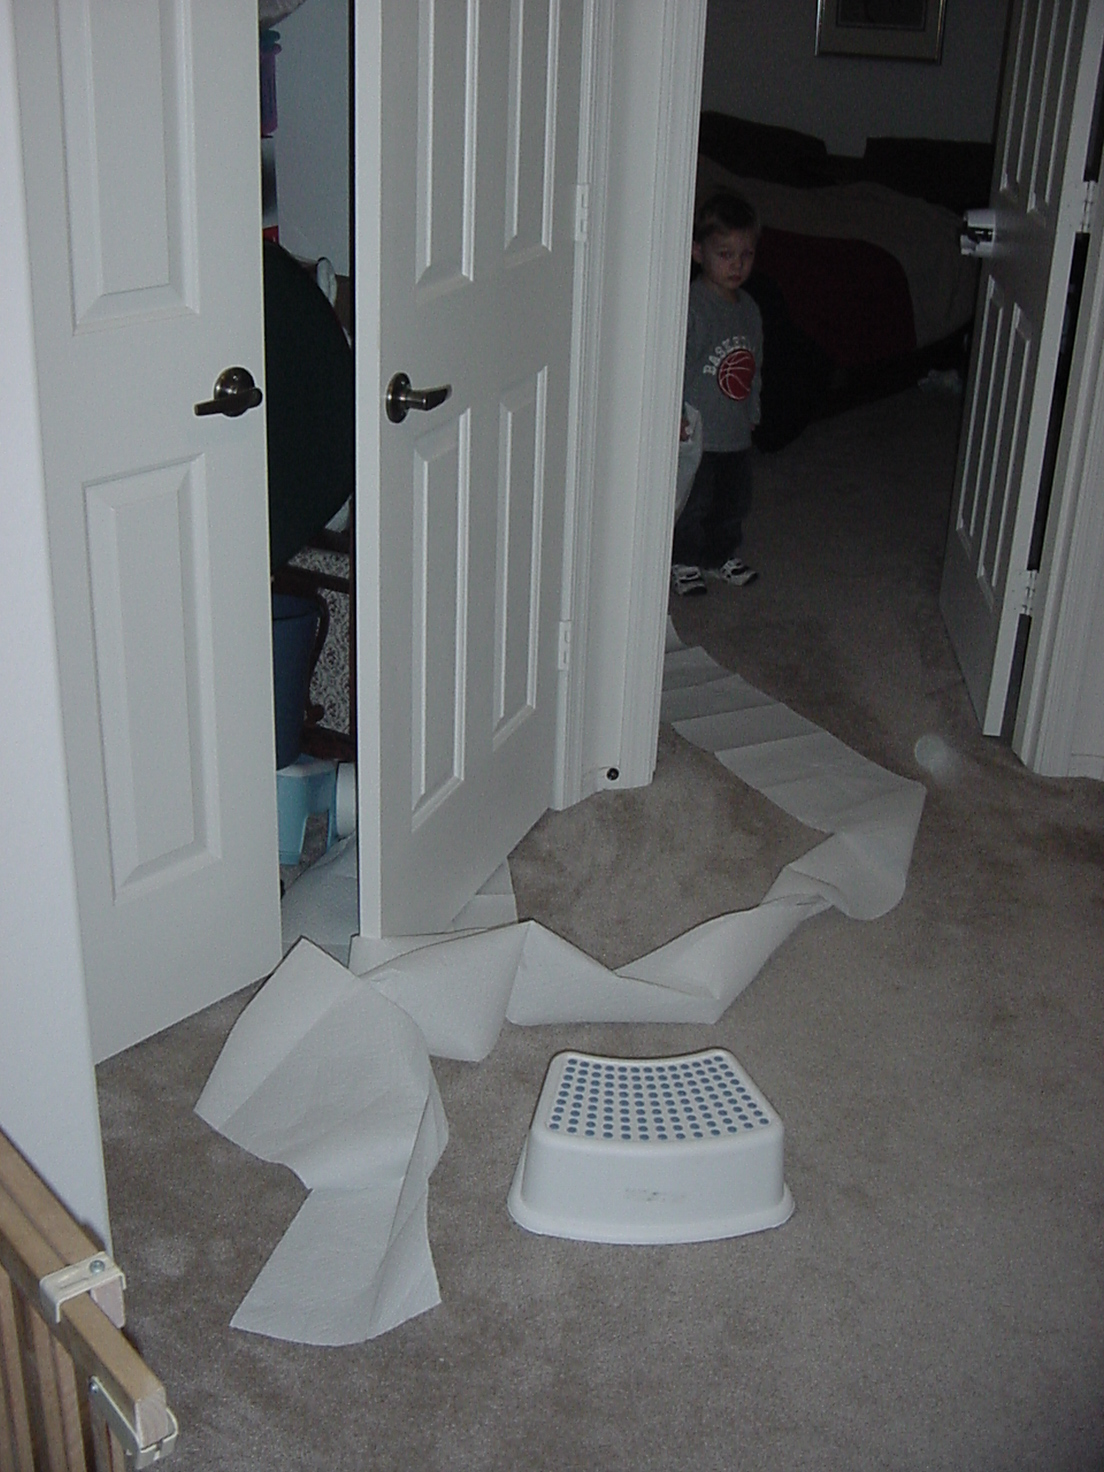 2009-01-21-carter-and-the-paper-towels-2.JPG